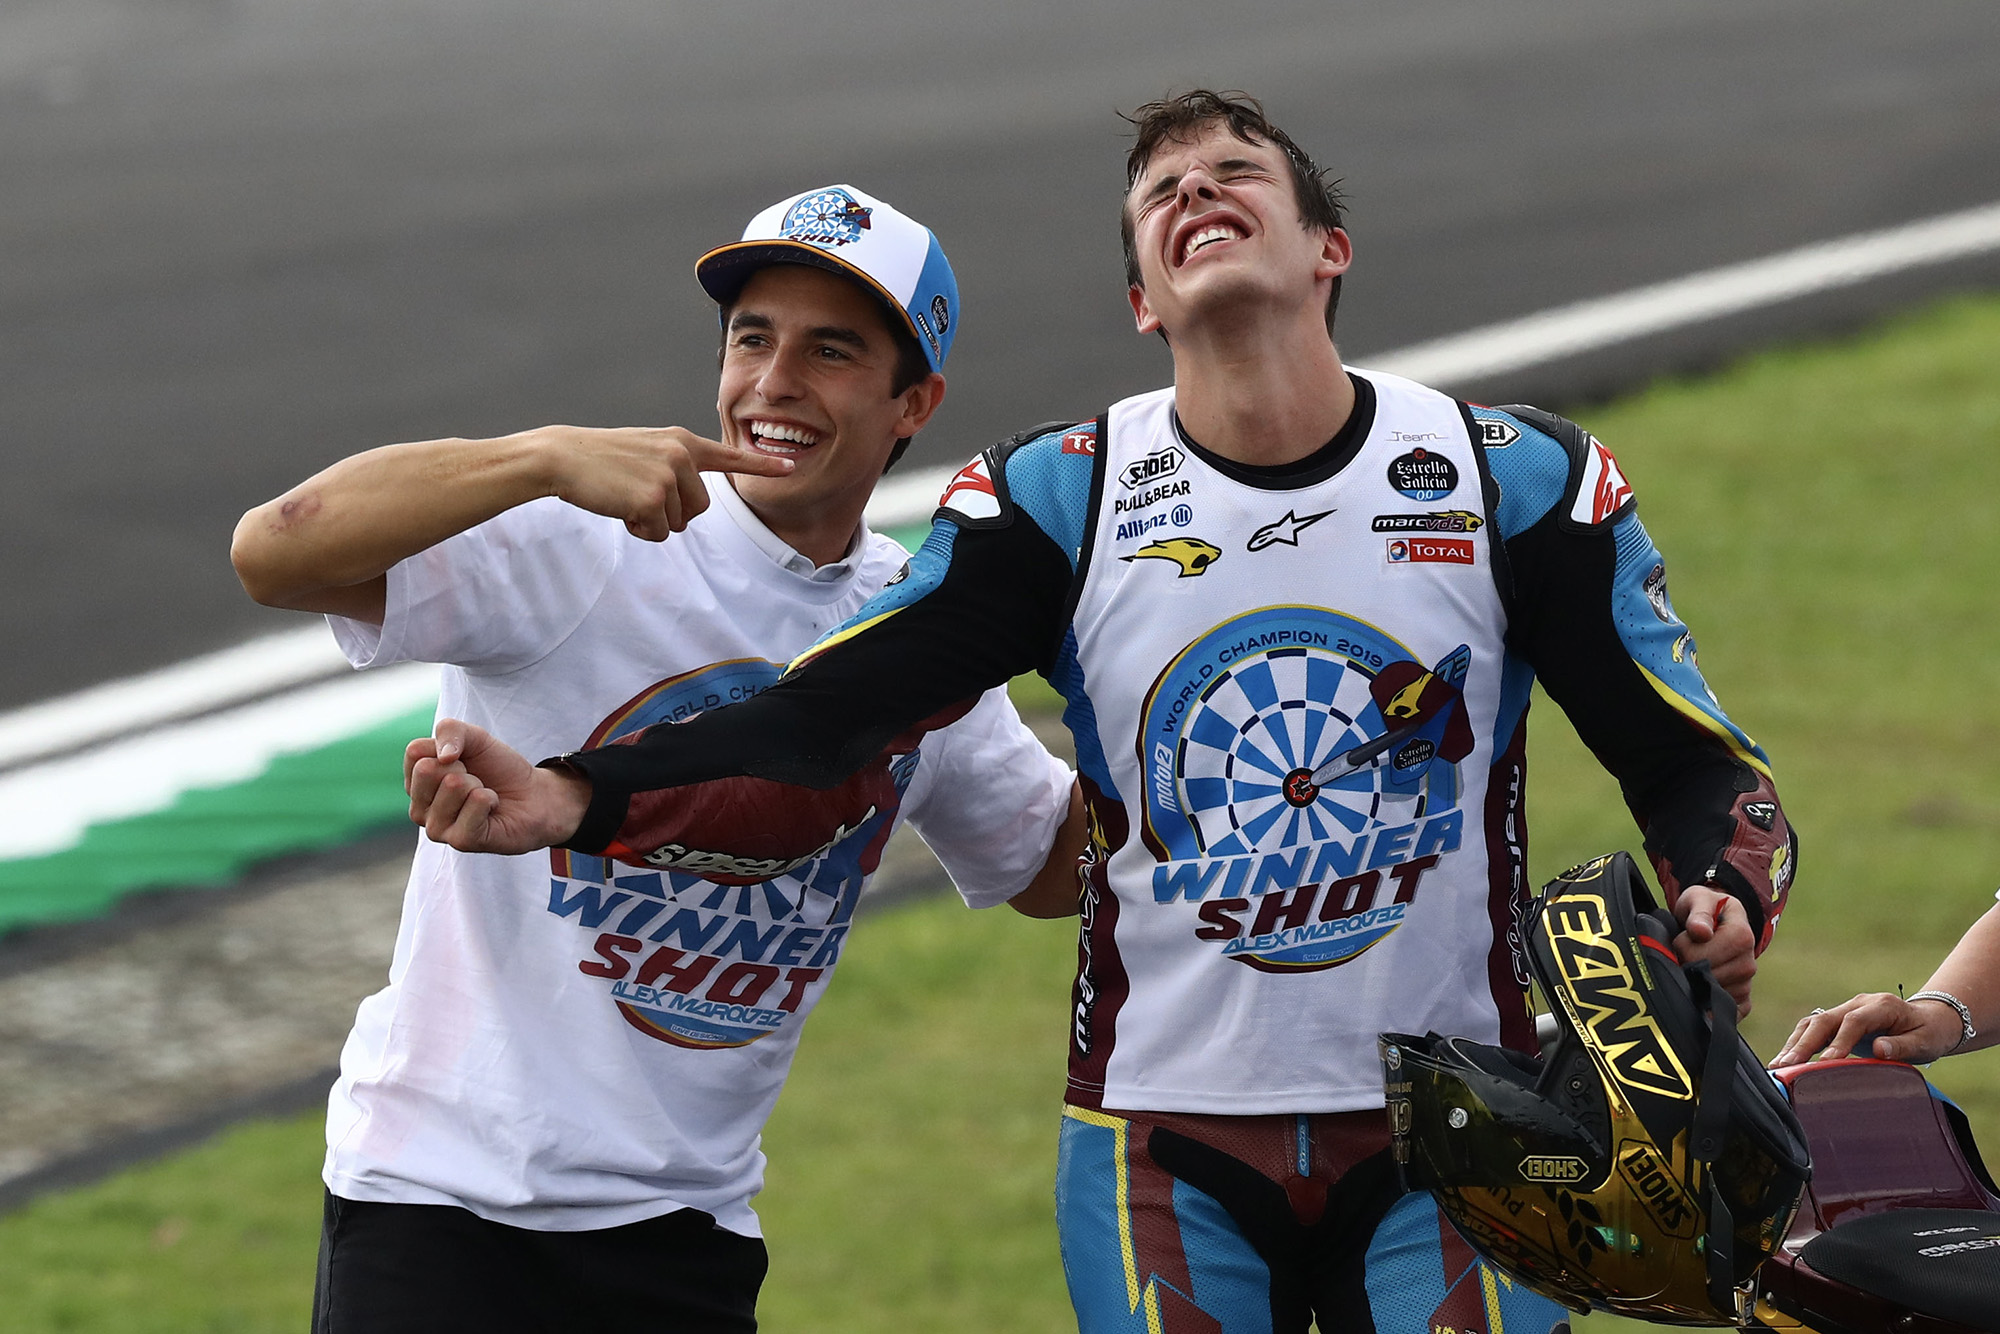 Alex Marquez celebrates winning his Moto2 title with brother Marc